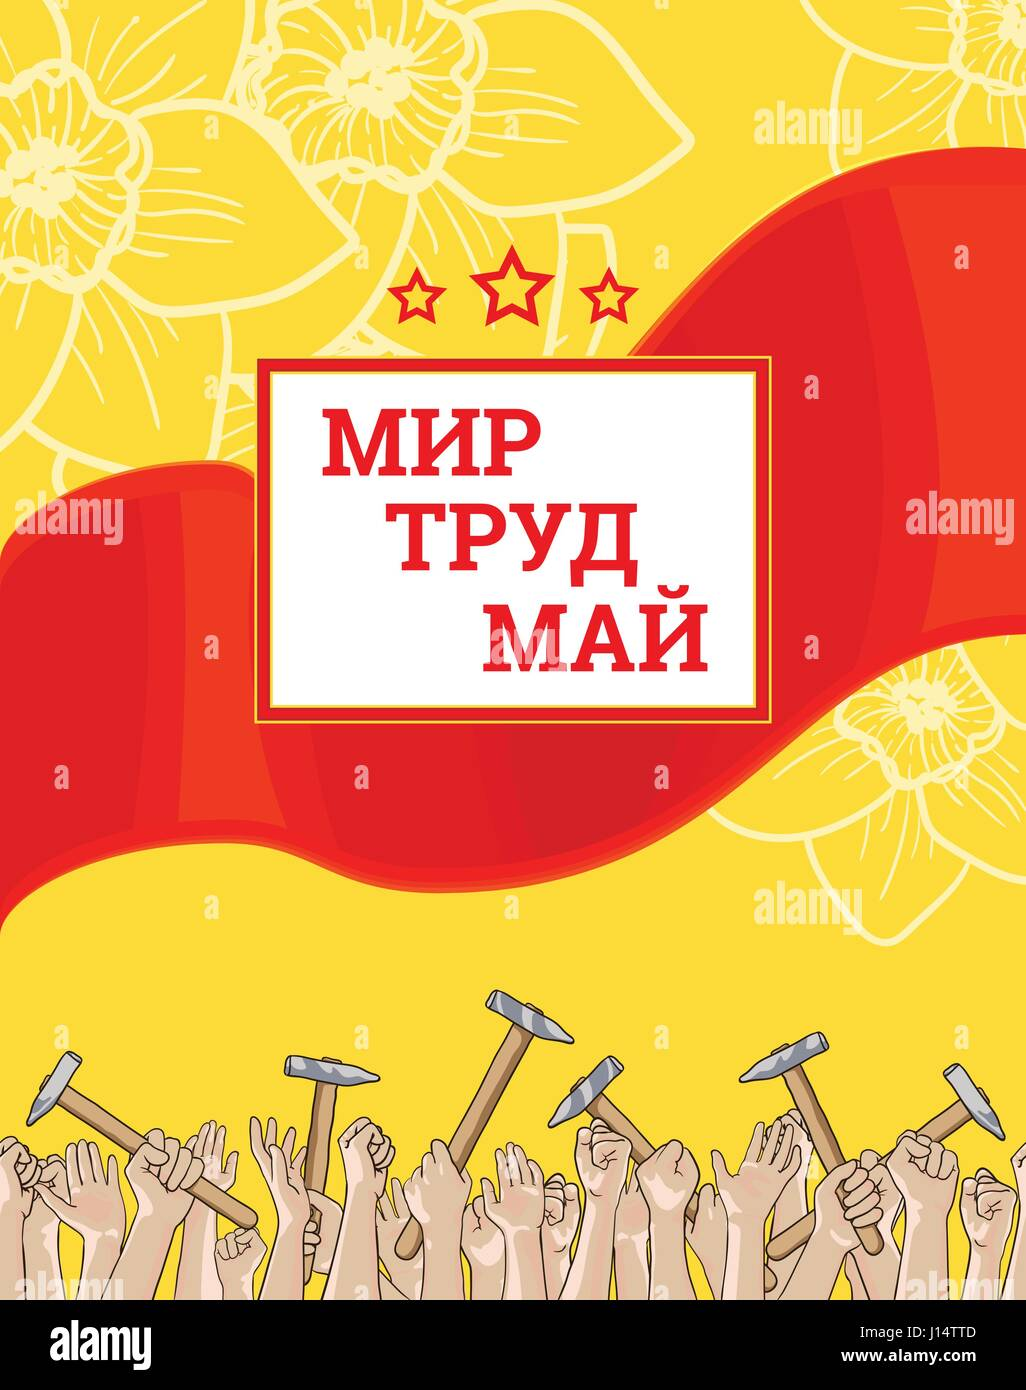 International Workers Day, May 1. Russian text means Peace Labour May. Hand drawn poster for print. Crowd of workers - Stock Vector